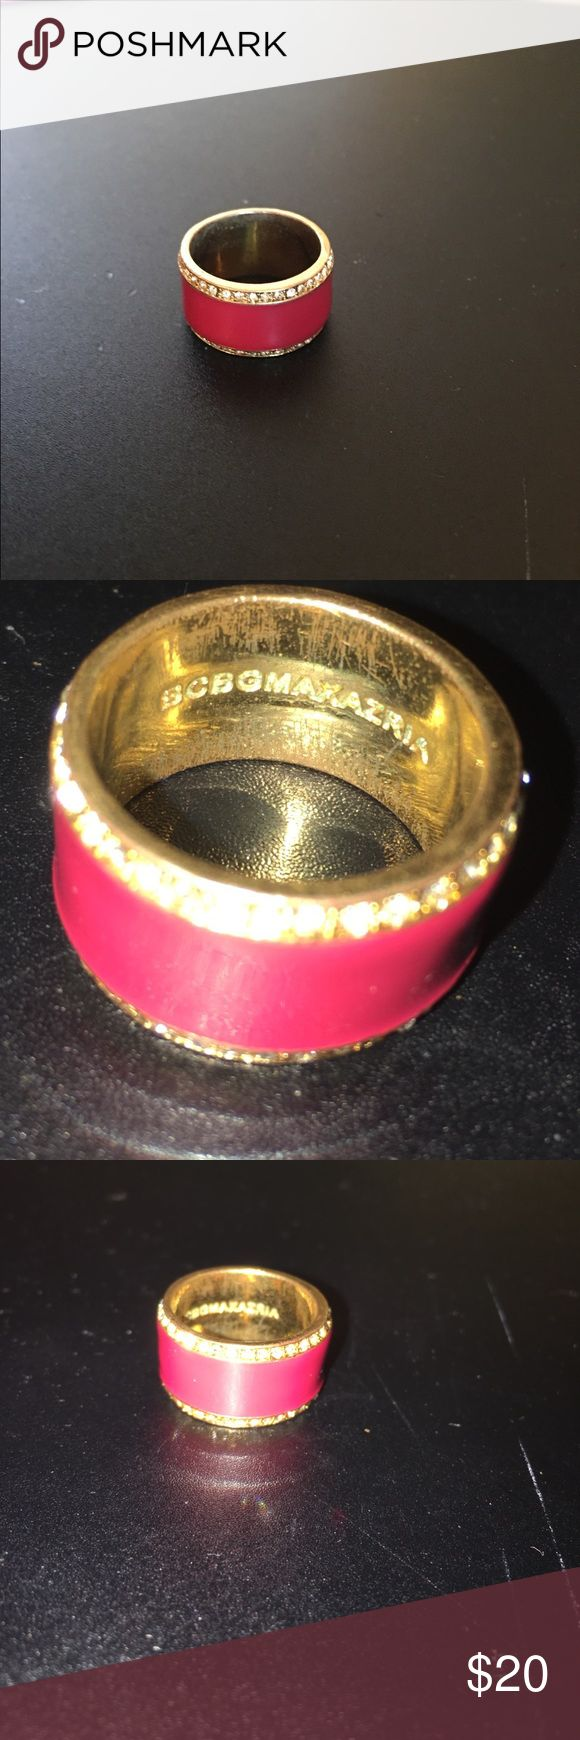 """BCBG Max Azria Pink Ring Pink ring fits size 6 to 7 finger. Brand inscription on inside of ring. Gold and """"diamond"""" piping on the outside. Worn lovingly. BCBGMaxAzria Jewelry Rings"""